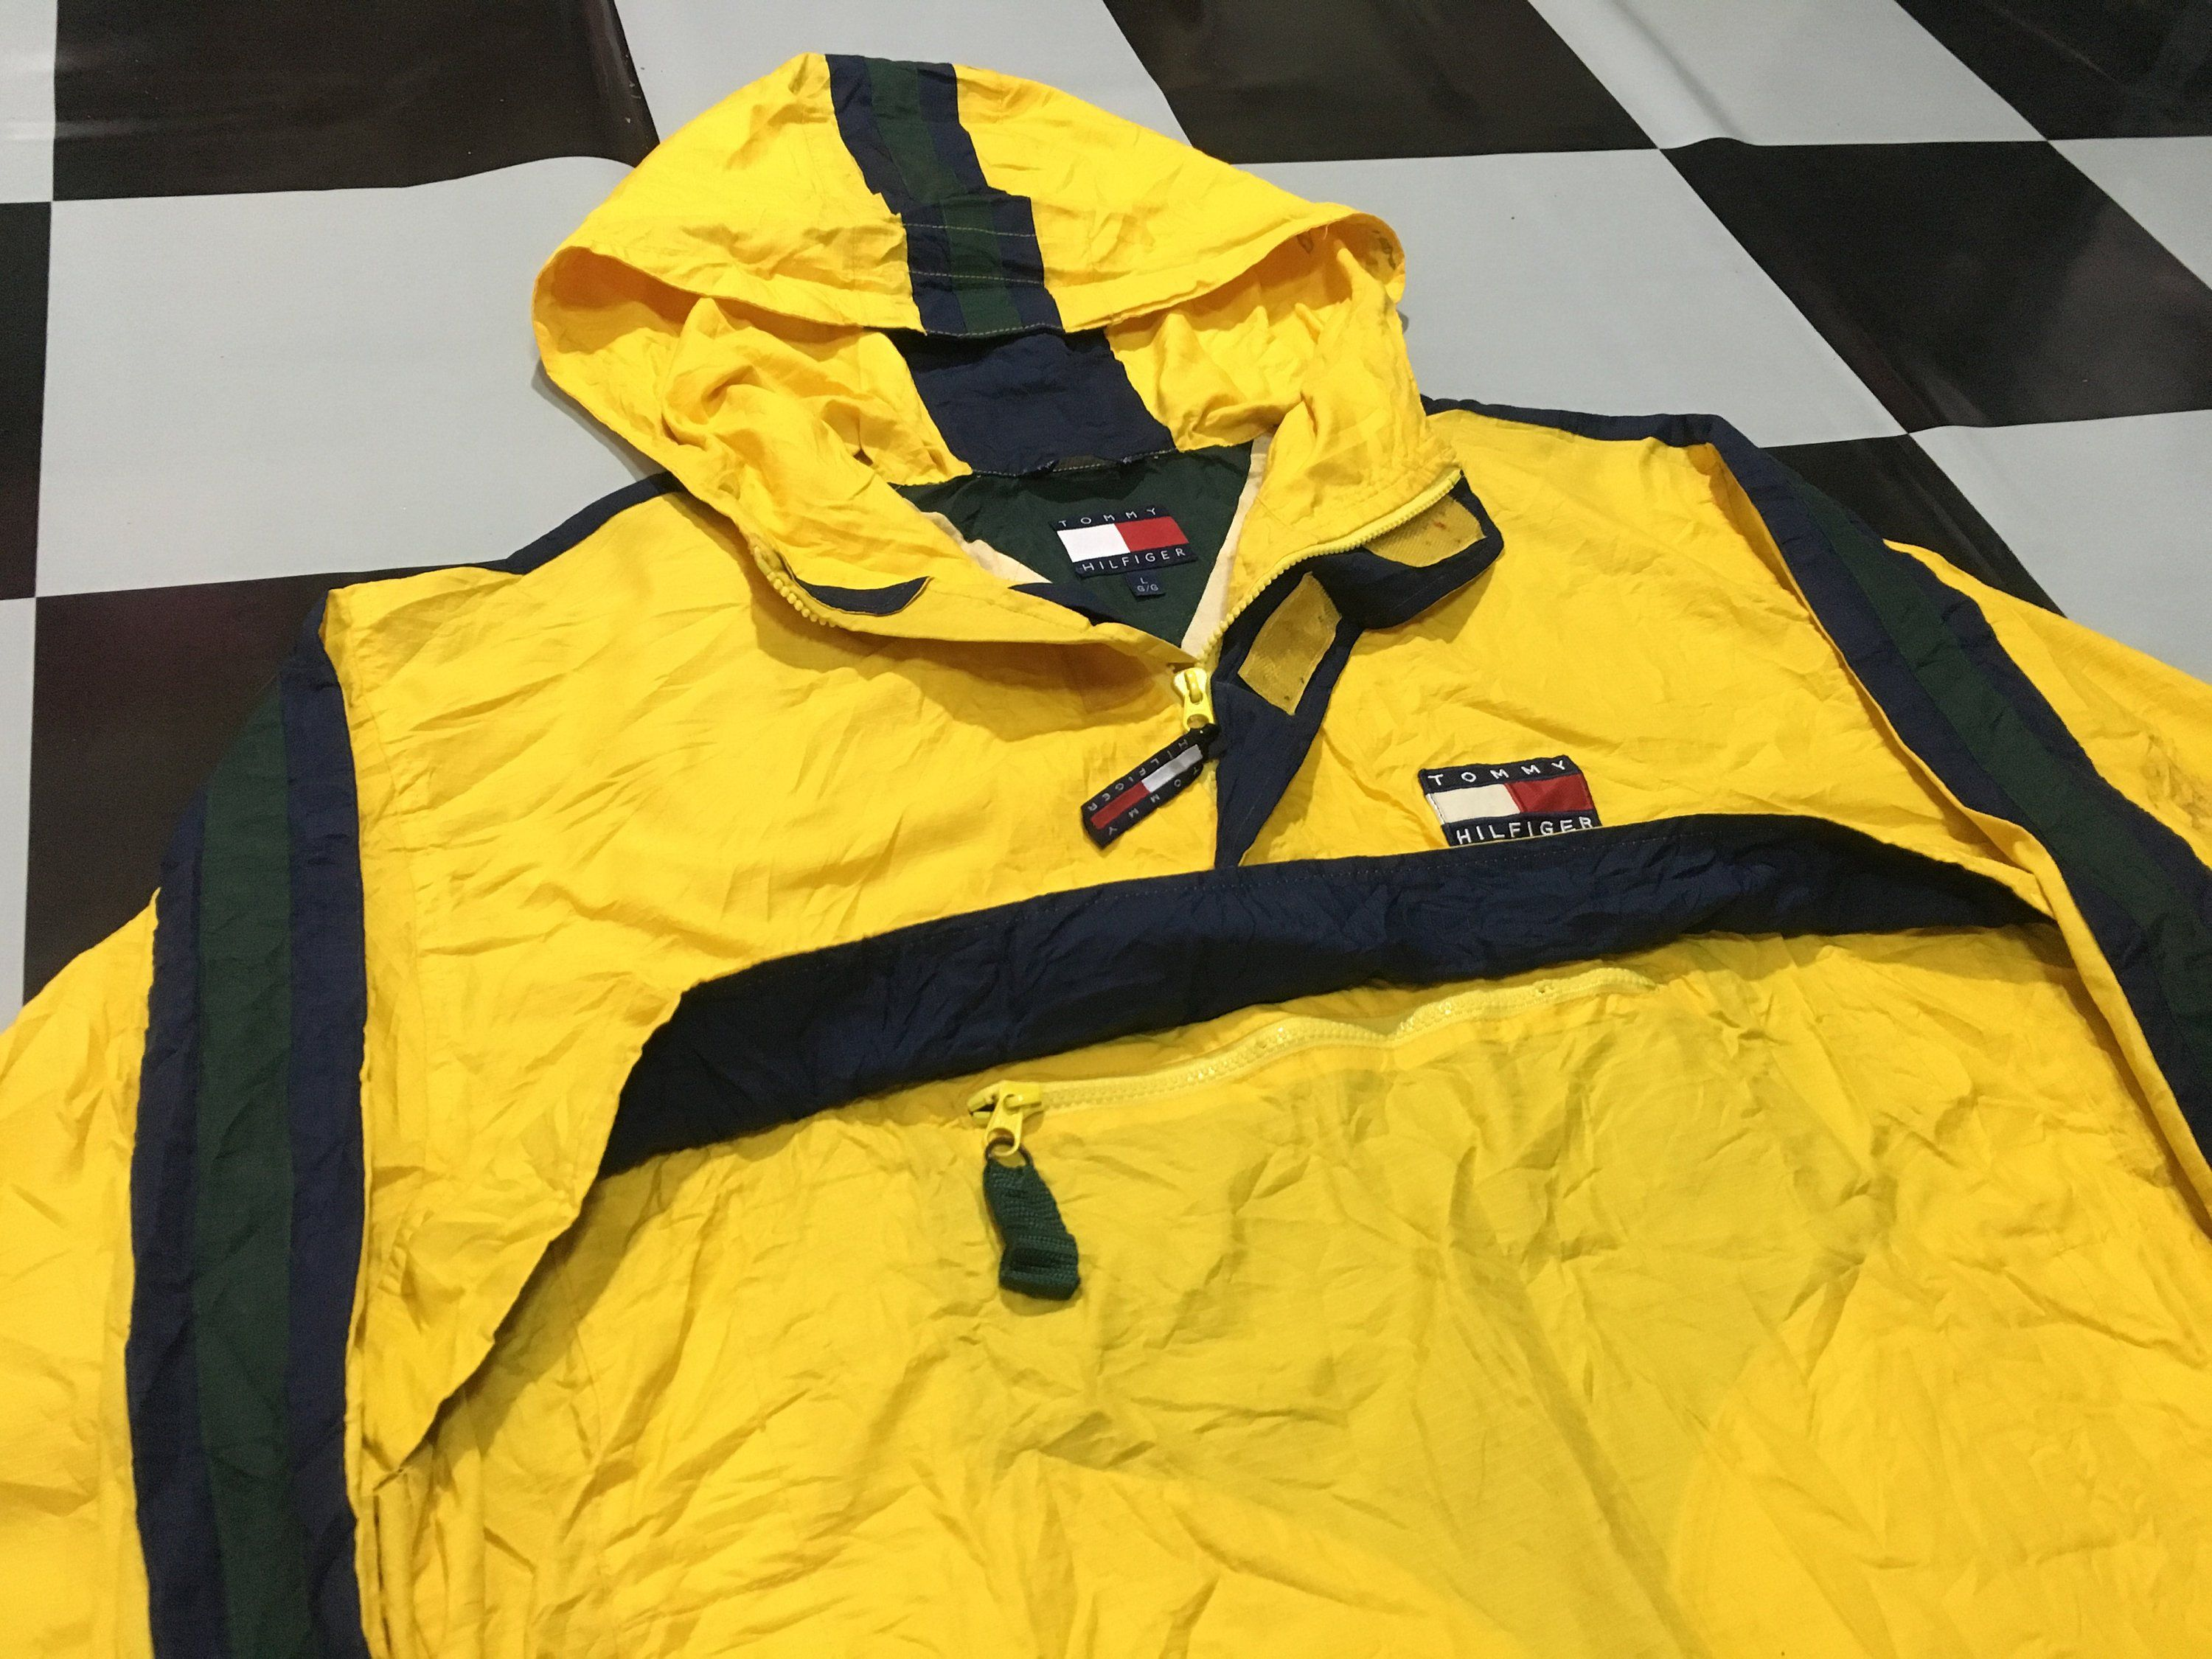 6c9dcb2d0adb Vintage Tommy hilfiger jacket windbreaker pullover anorak jacket flag logo  reflective two tone Yellow Black Size L Excellent condition by  AlivevintageShop ...